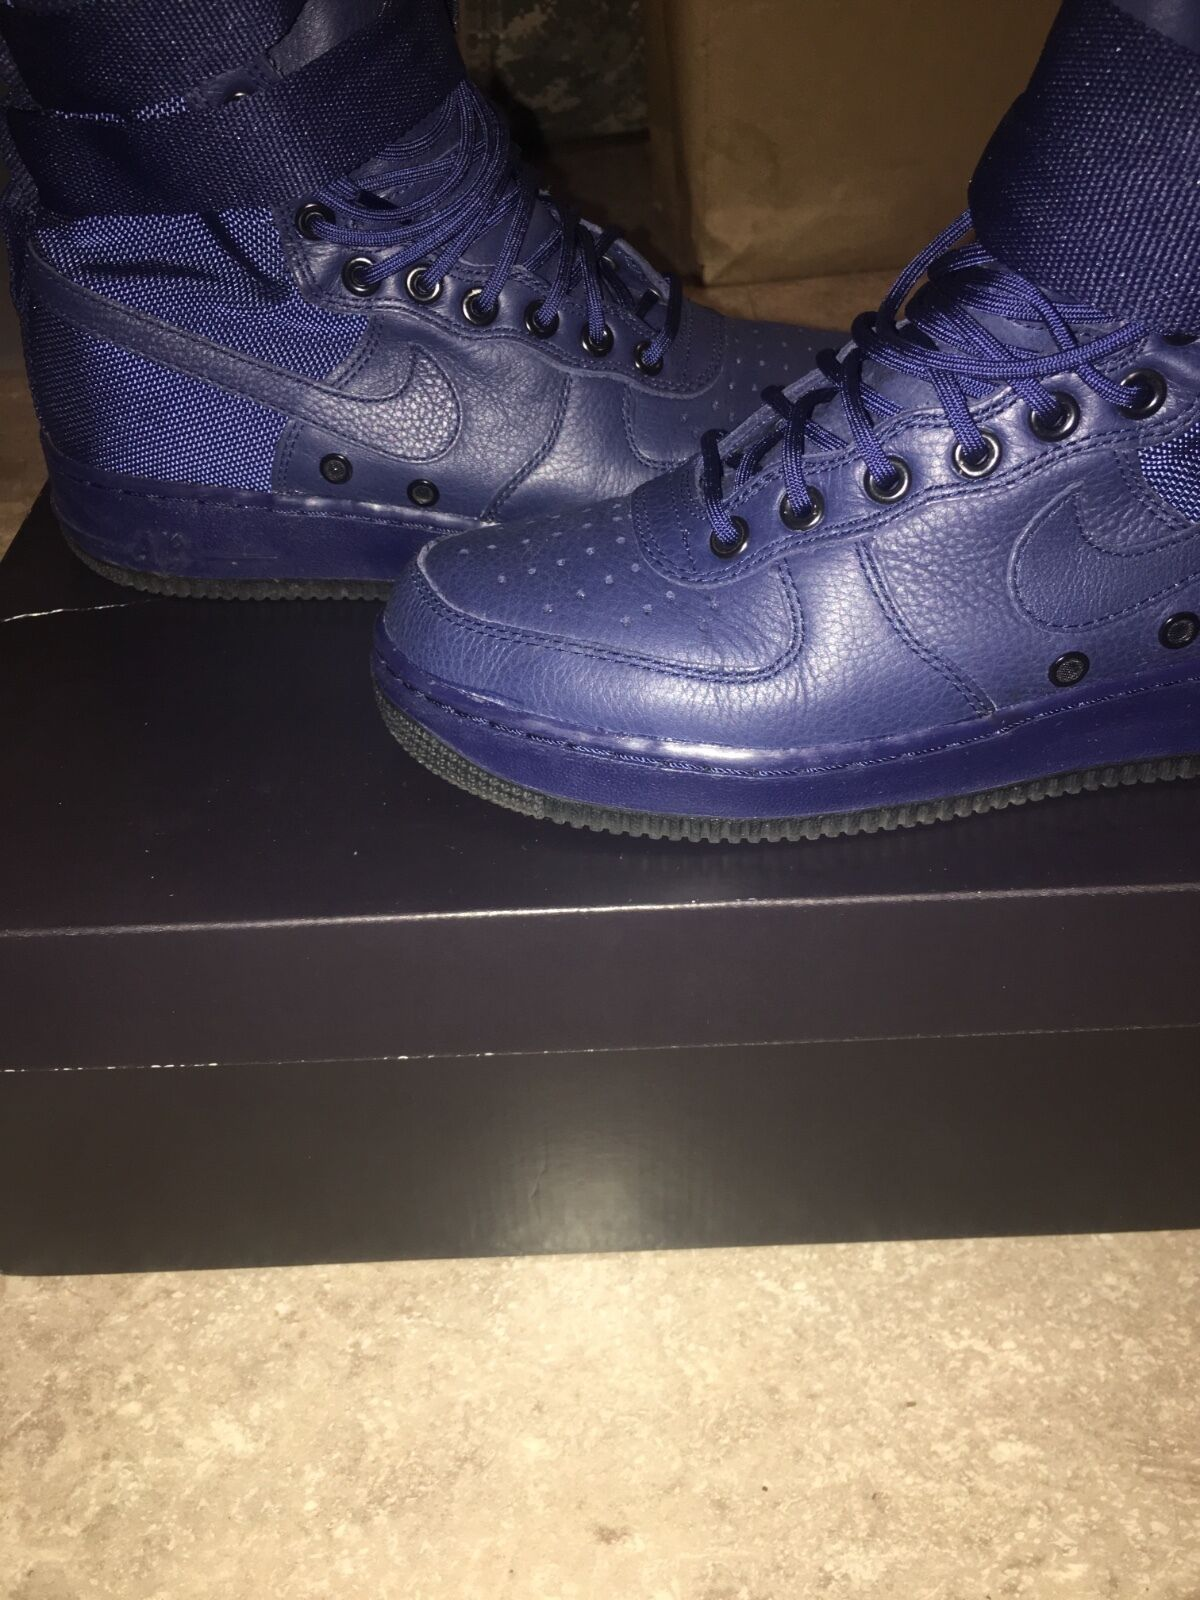 Women's Navy Special Air Force 1s size 9